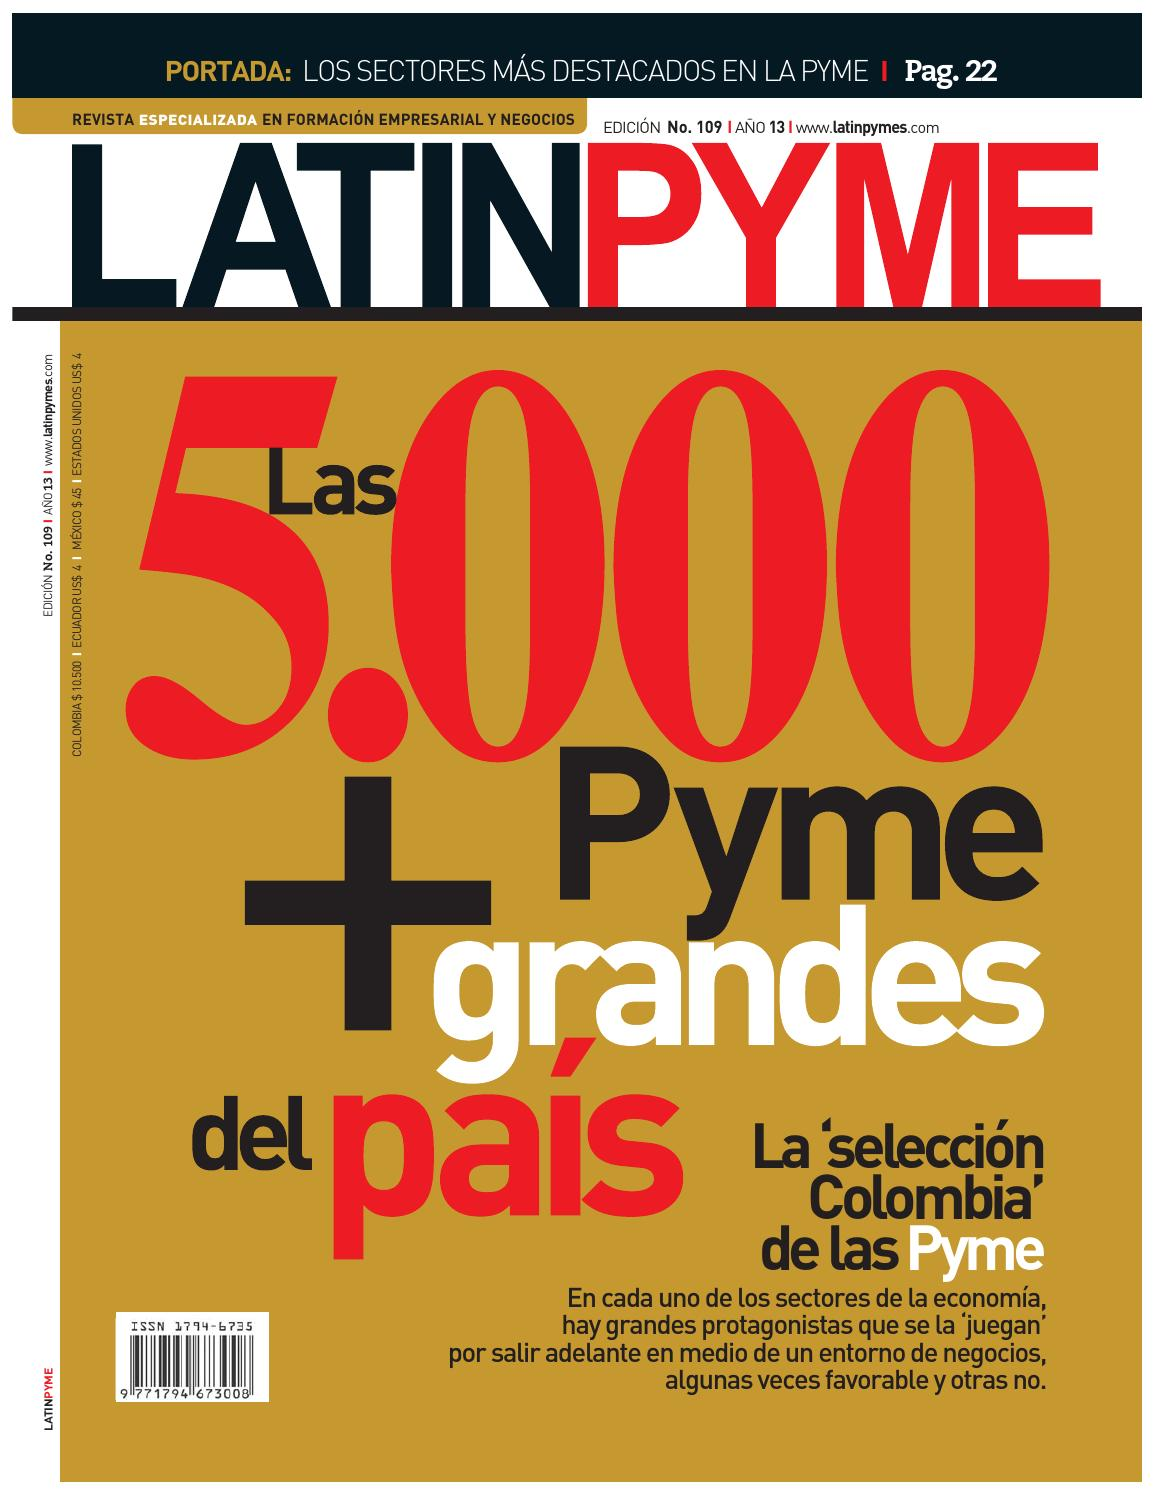 Revista latinpyme 109 by LATINPYME - issuu ce54cbaa891f